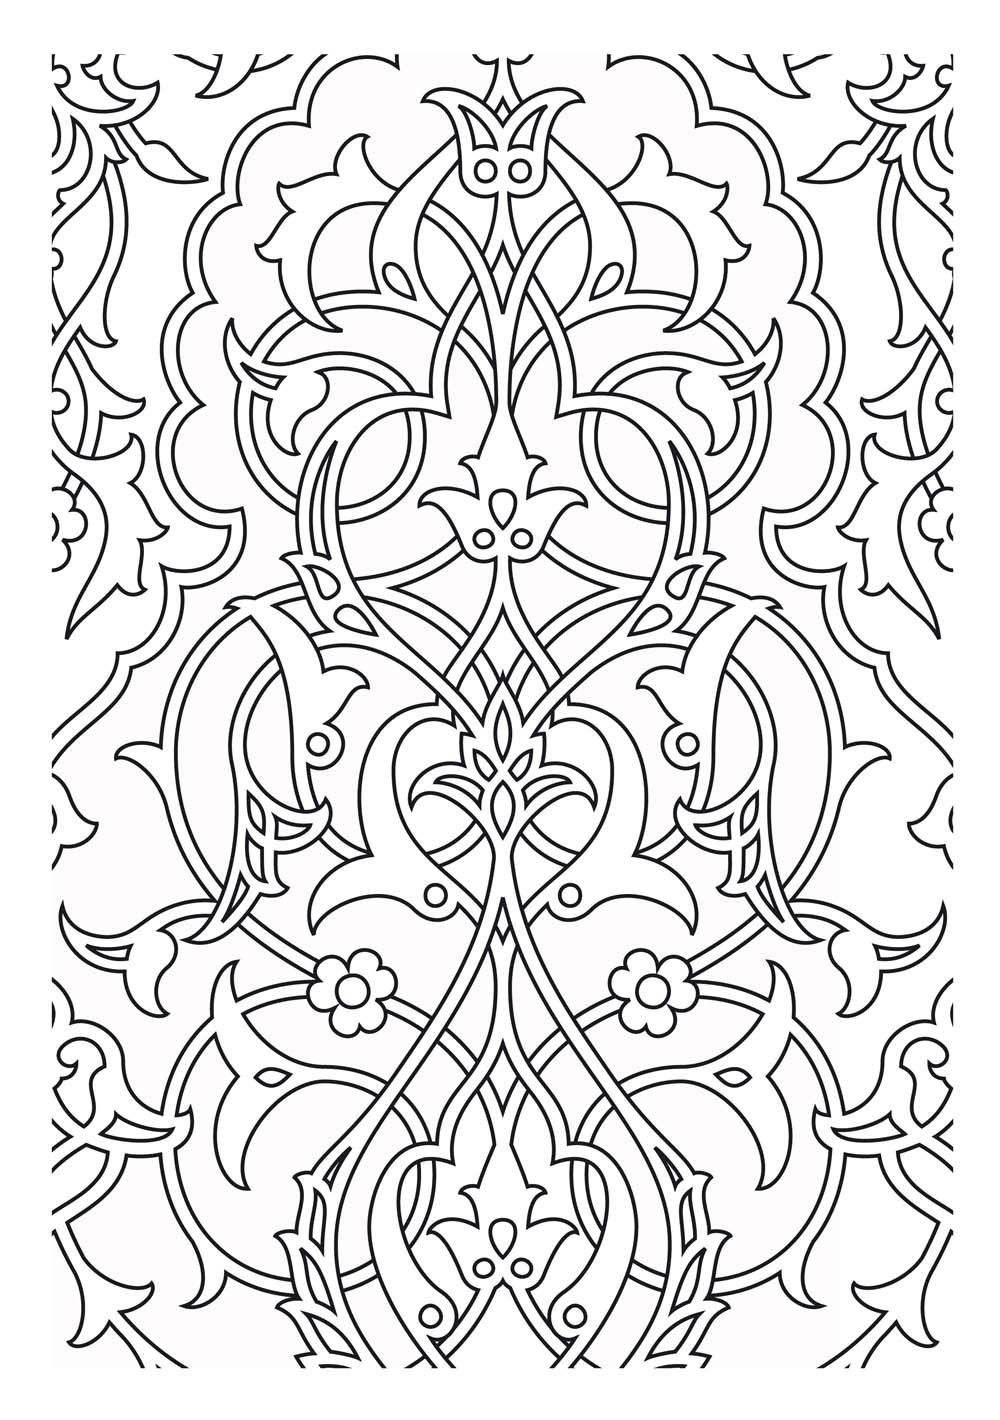 Patterns Medievaux Middle Ages Coloring Pages For Adults Just